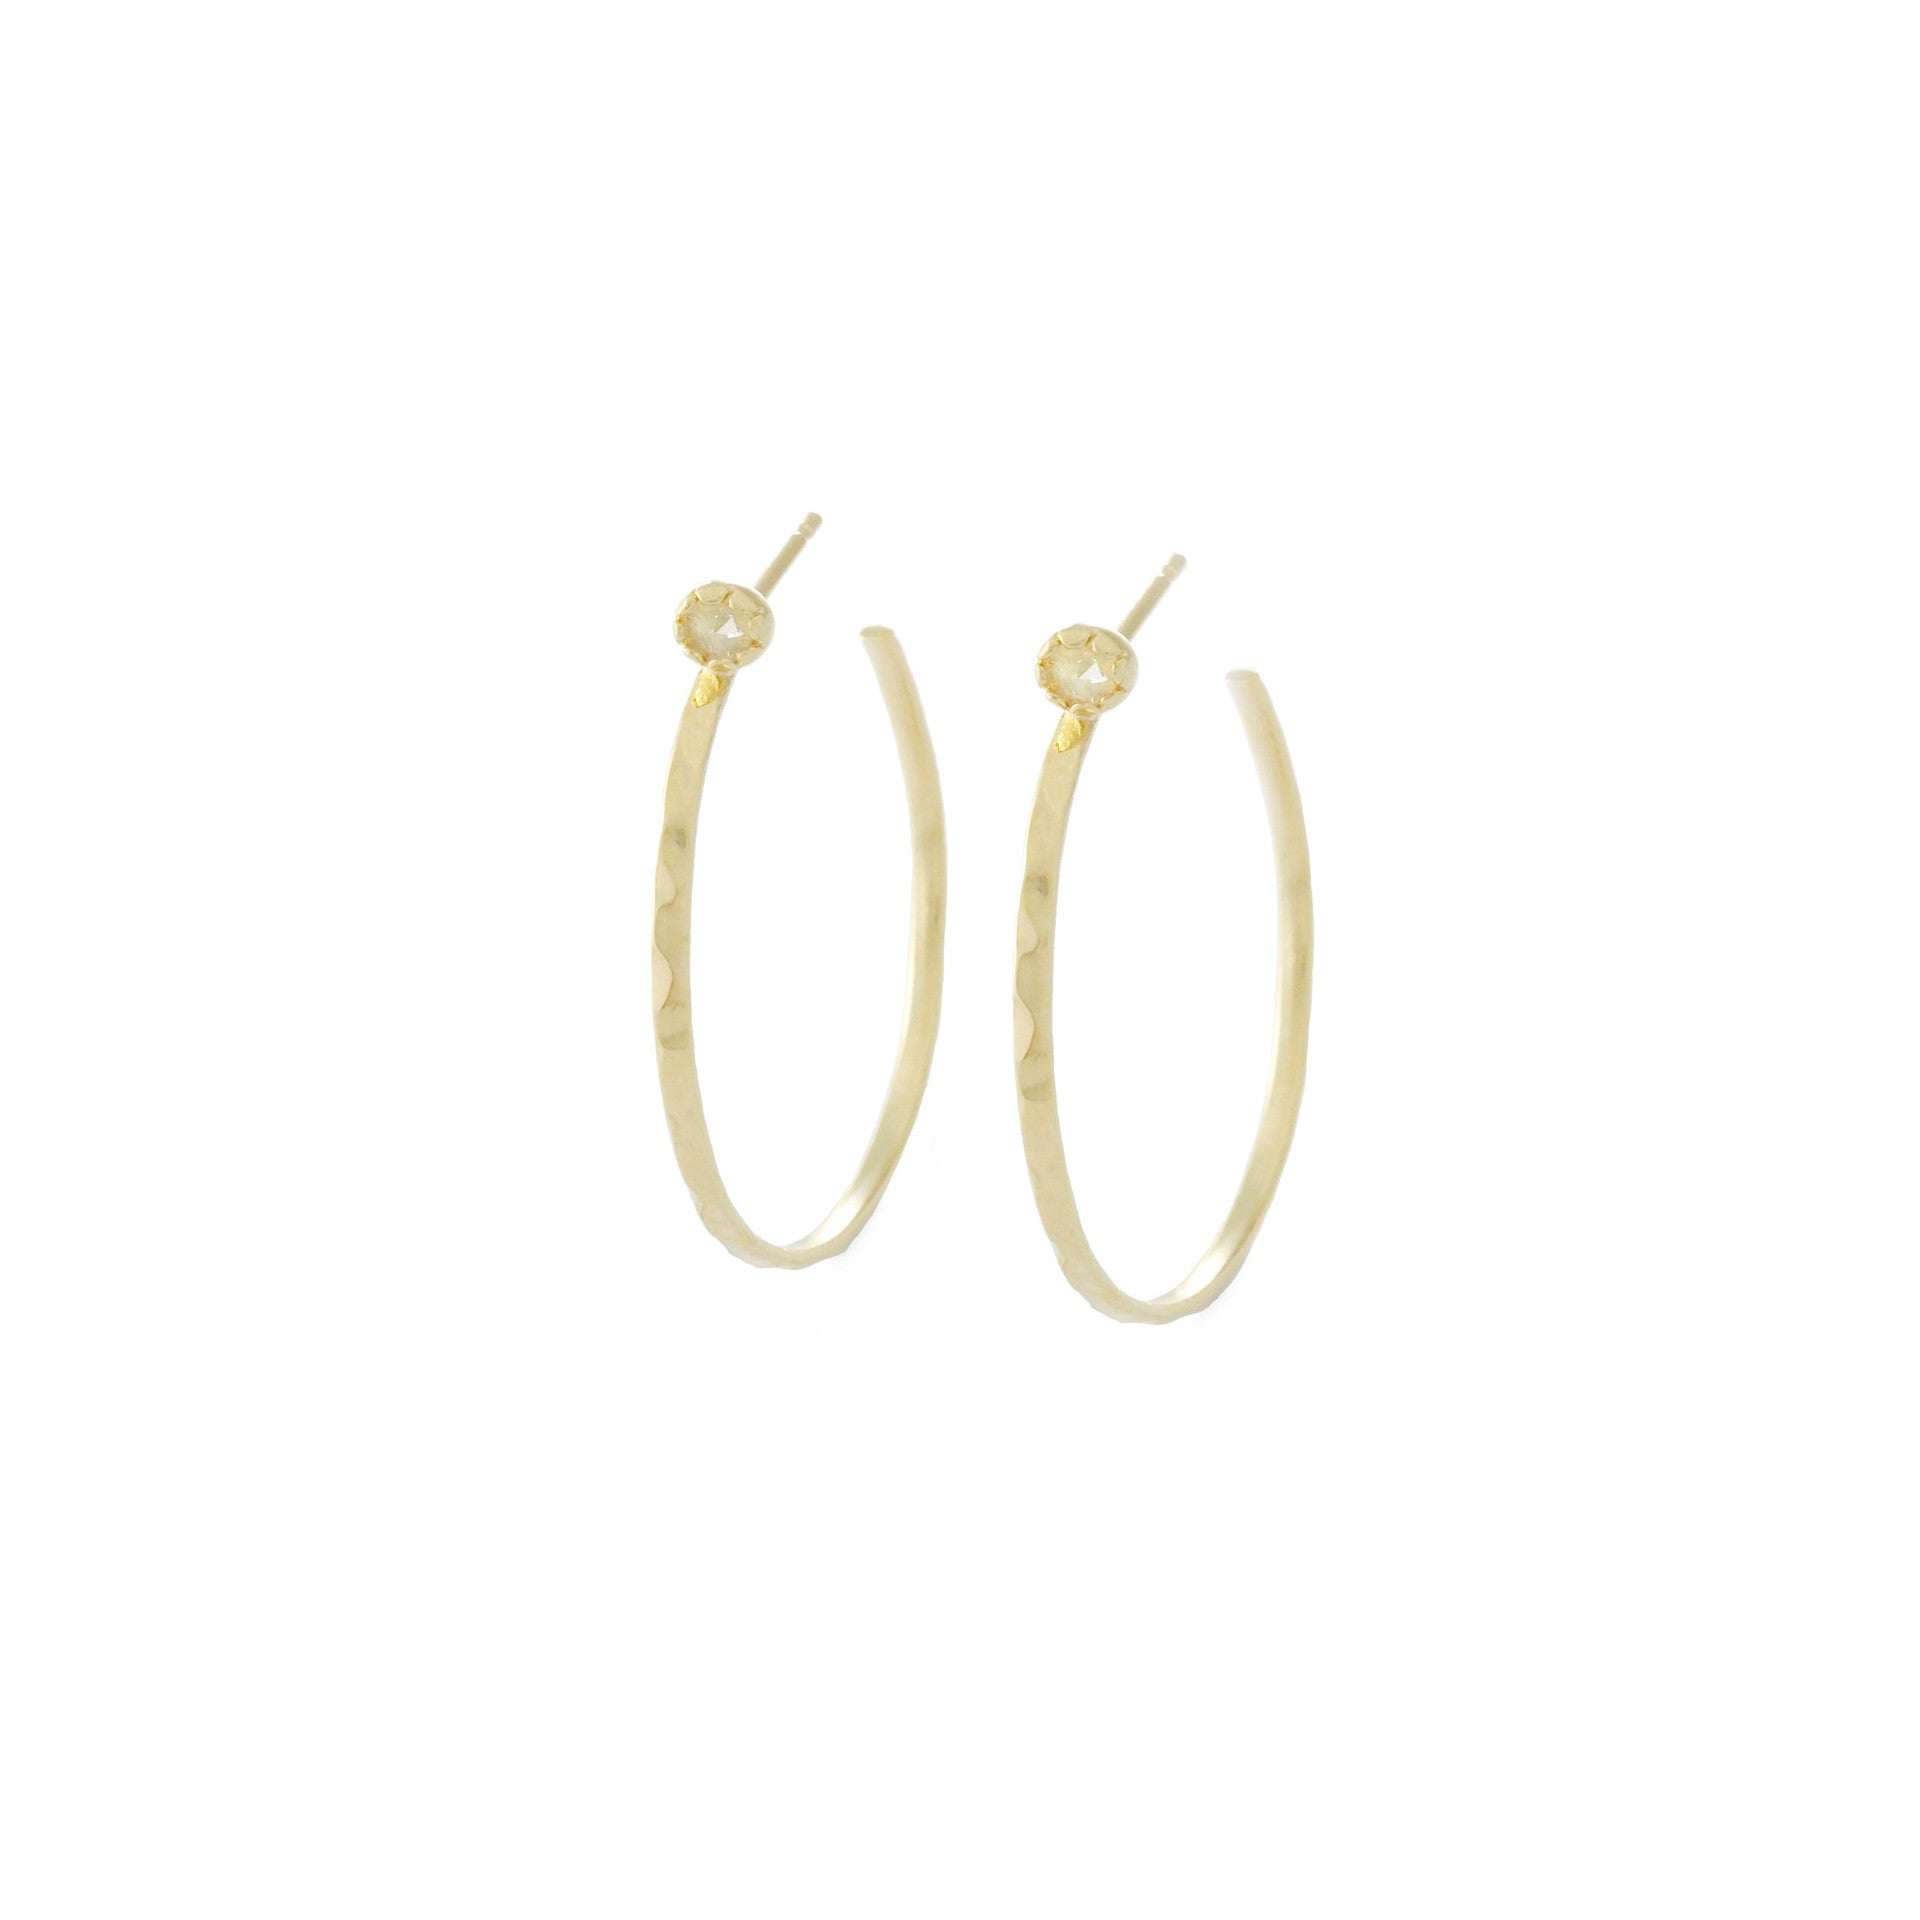 yellow stud hoop facing lyst view gold jewelry fullscreen front earrings zoe chicco diamond